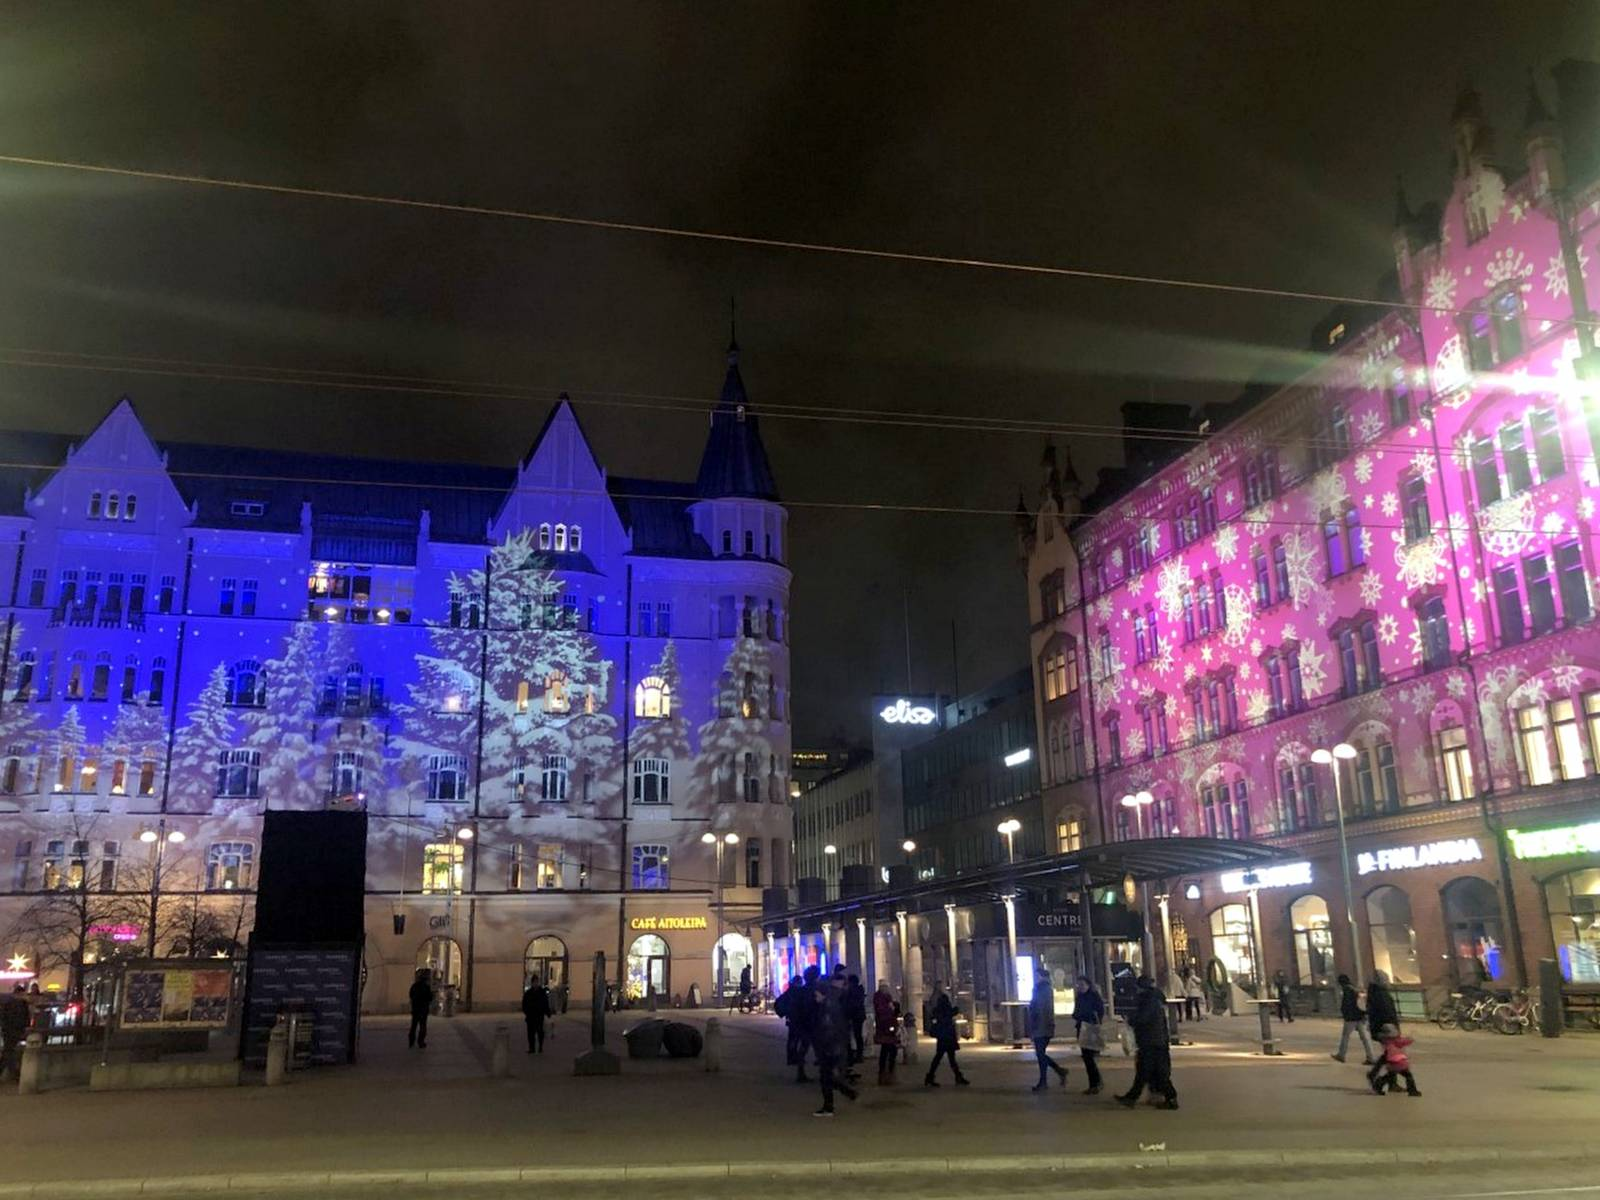 Buildings at Tampere Central square in Christmas lights.